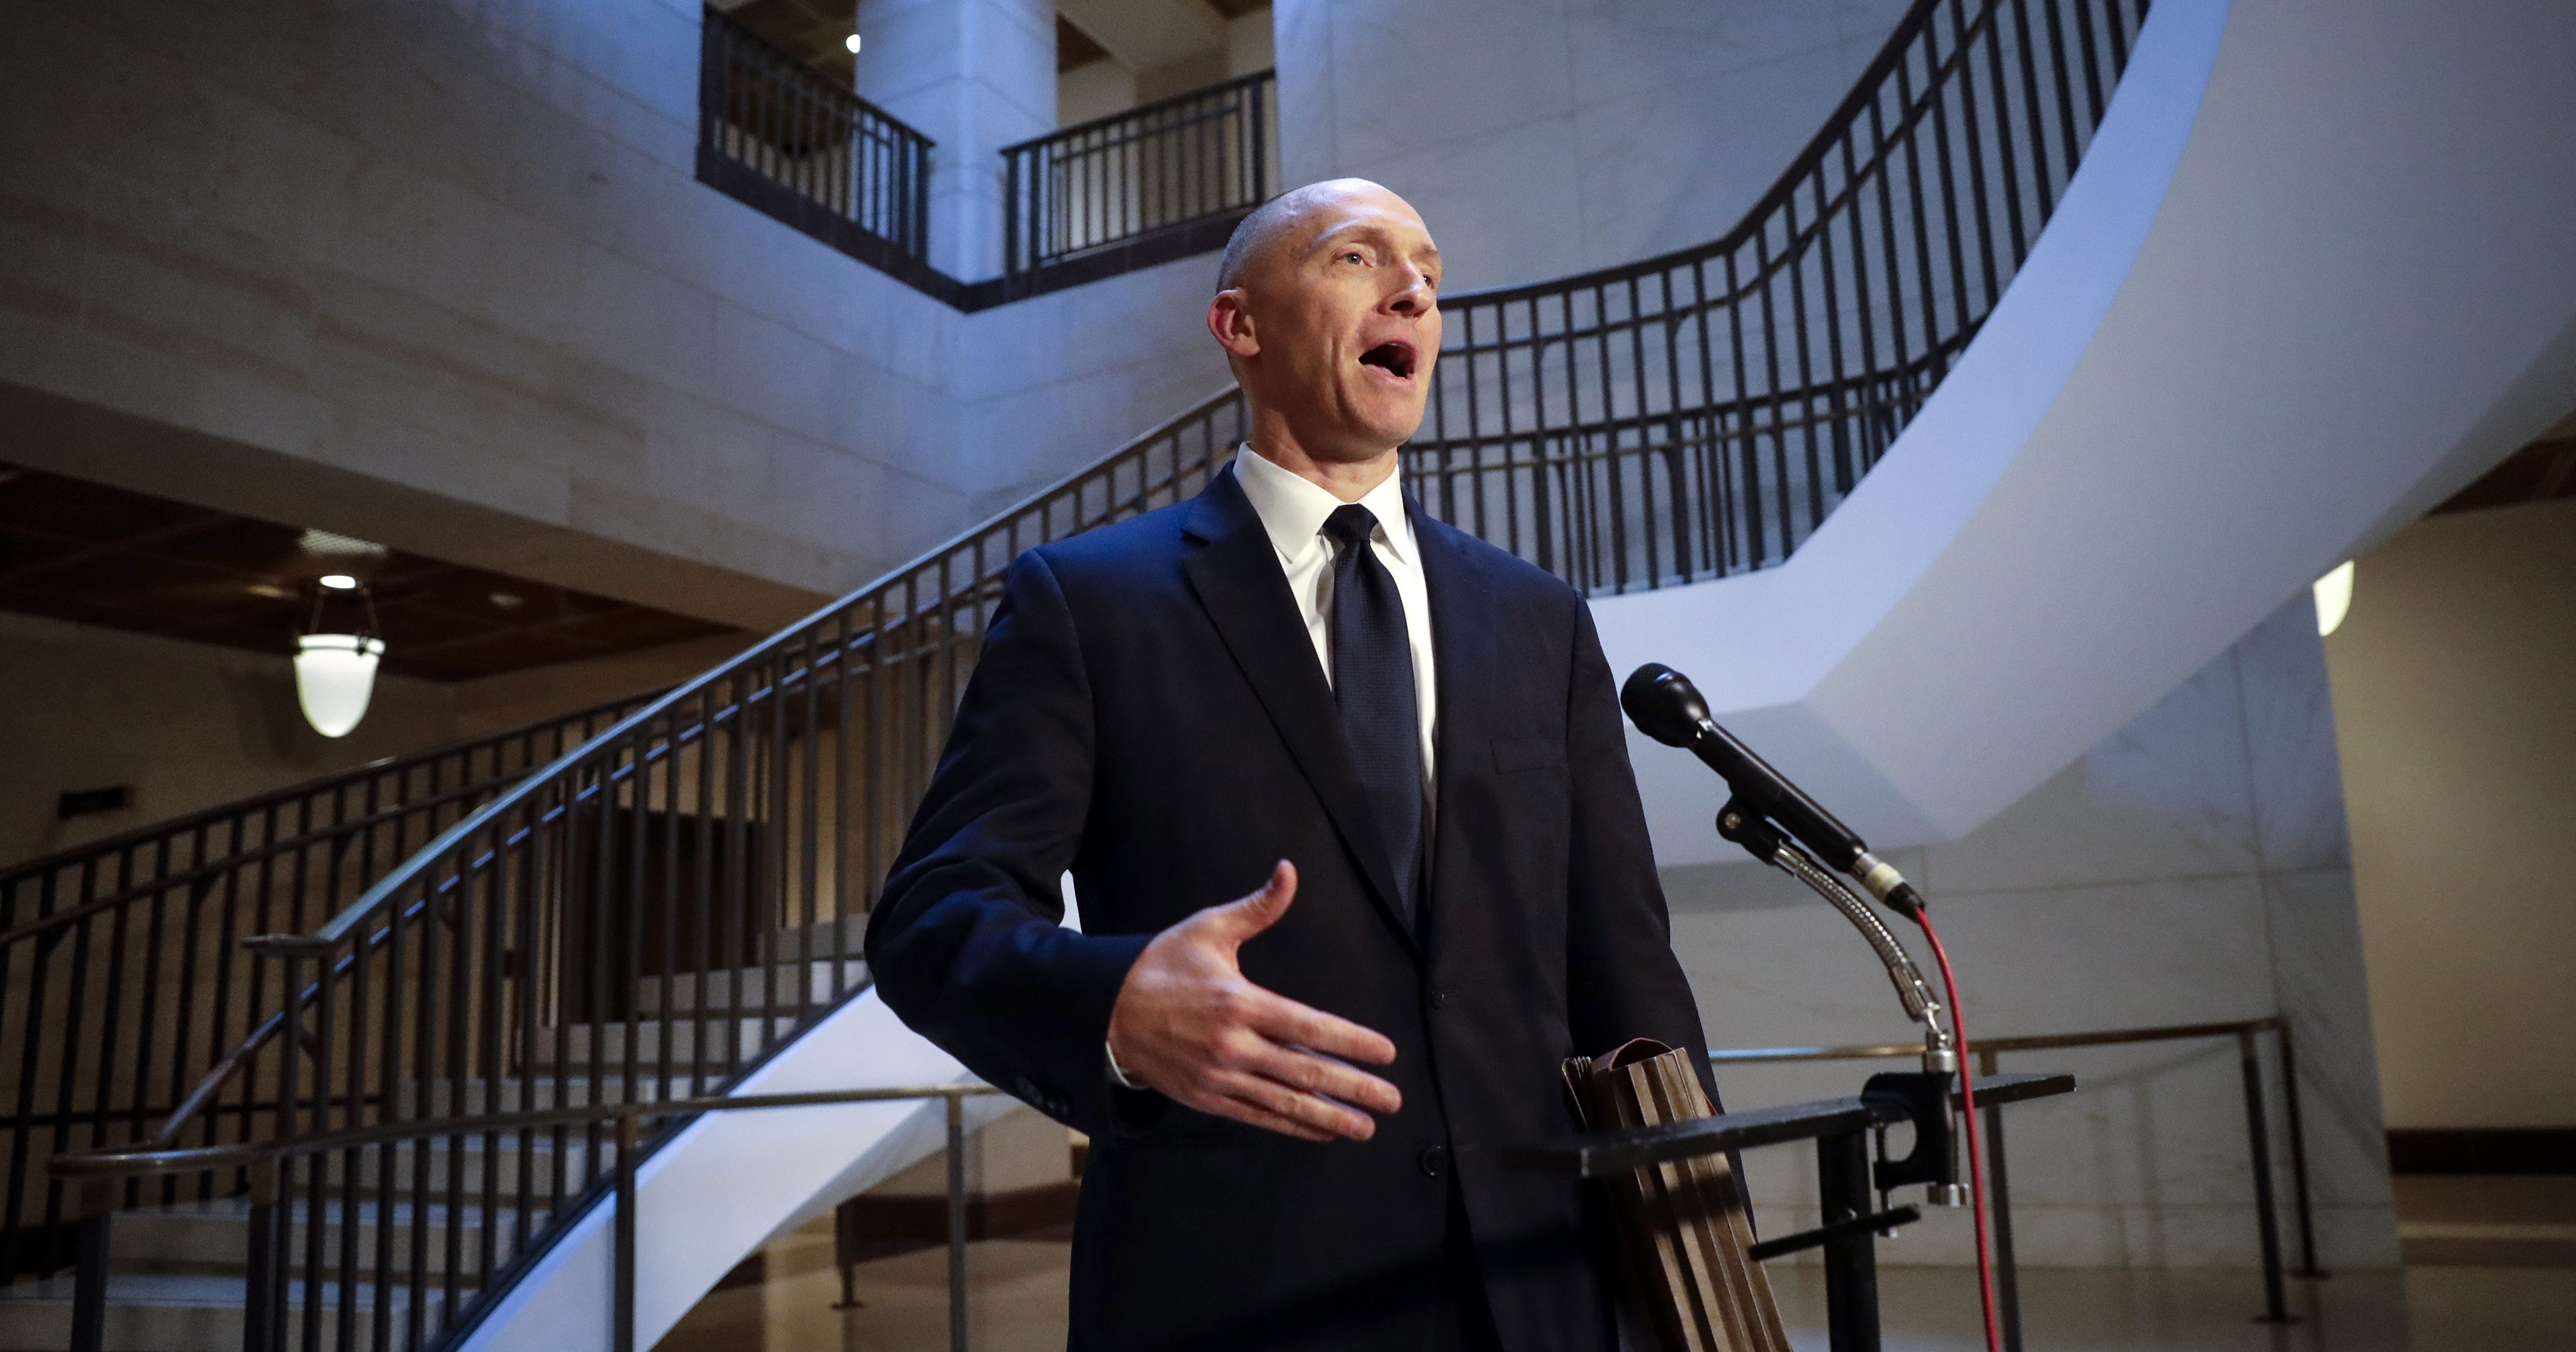 """FILE - In a Nov. 2, 2017 file photo, Carter Page, a foreign policy adviser to Donald Trump's 2016 presidential campaign, speaks with reporters following a day of questions from the House Intelligence Committee, on Capitol Hill in Washington. President Donald Trump claimed Sunday, July 22, 2018, that newly released documents relating to the wiretapping of his onetime campaign adviser Carter Page """"confirm with little doubt"""" that intelligence agencies misled the courts that approved the warrant. But lawmakers from both parties say the documents don't show wrongdoing."""